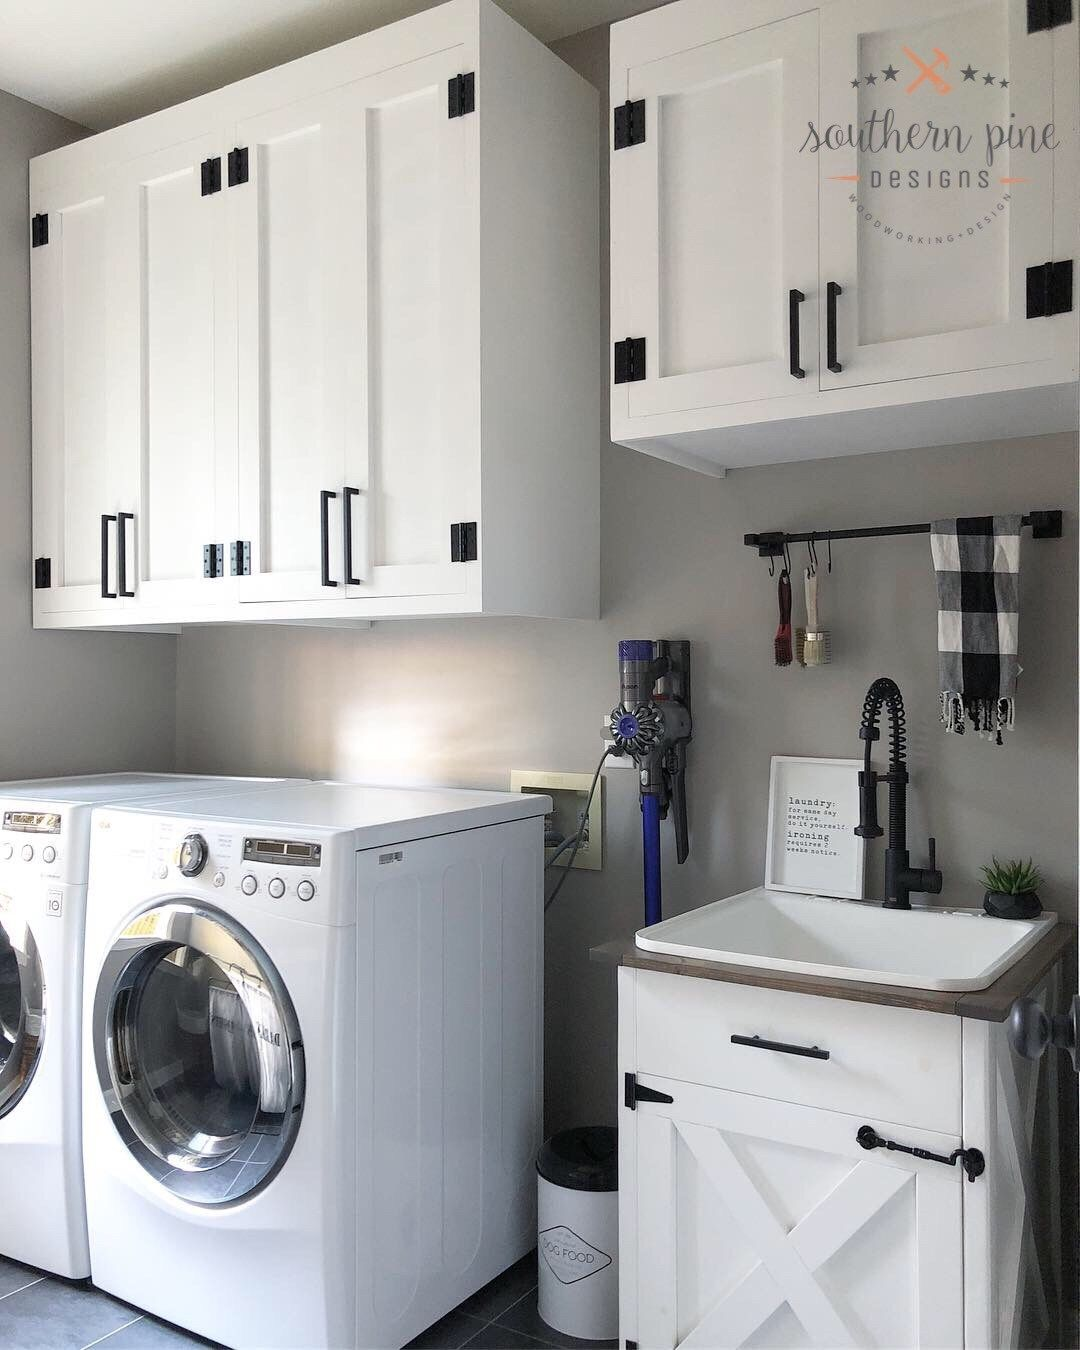 How To Diy Shaker Style Cabinets For Your Laundry Room Laundry